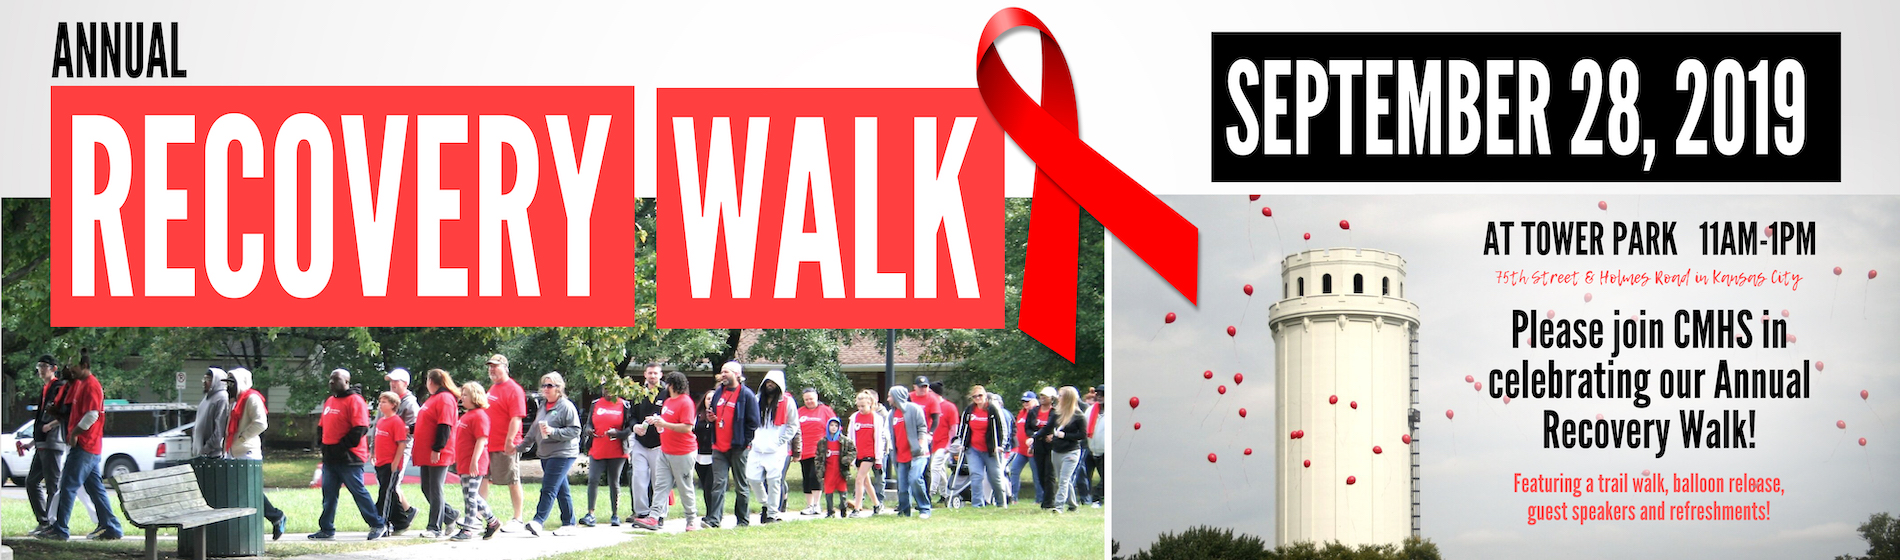 CMHS Recovery Walk